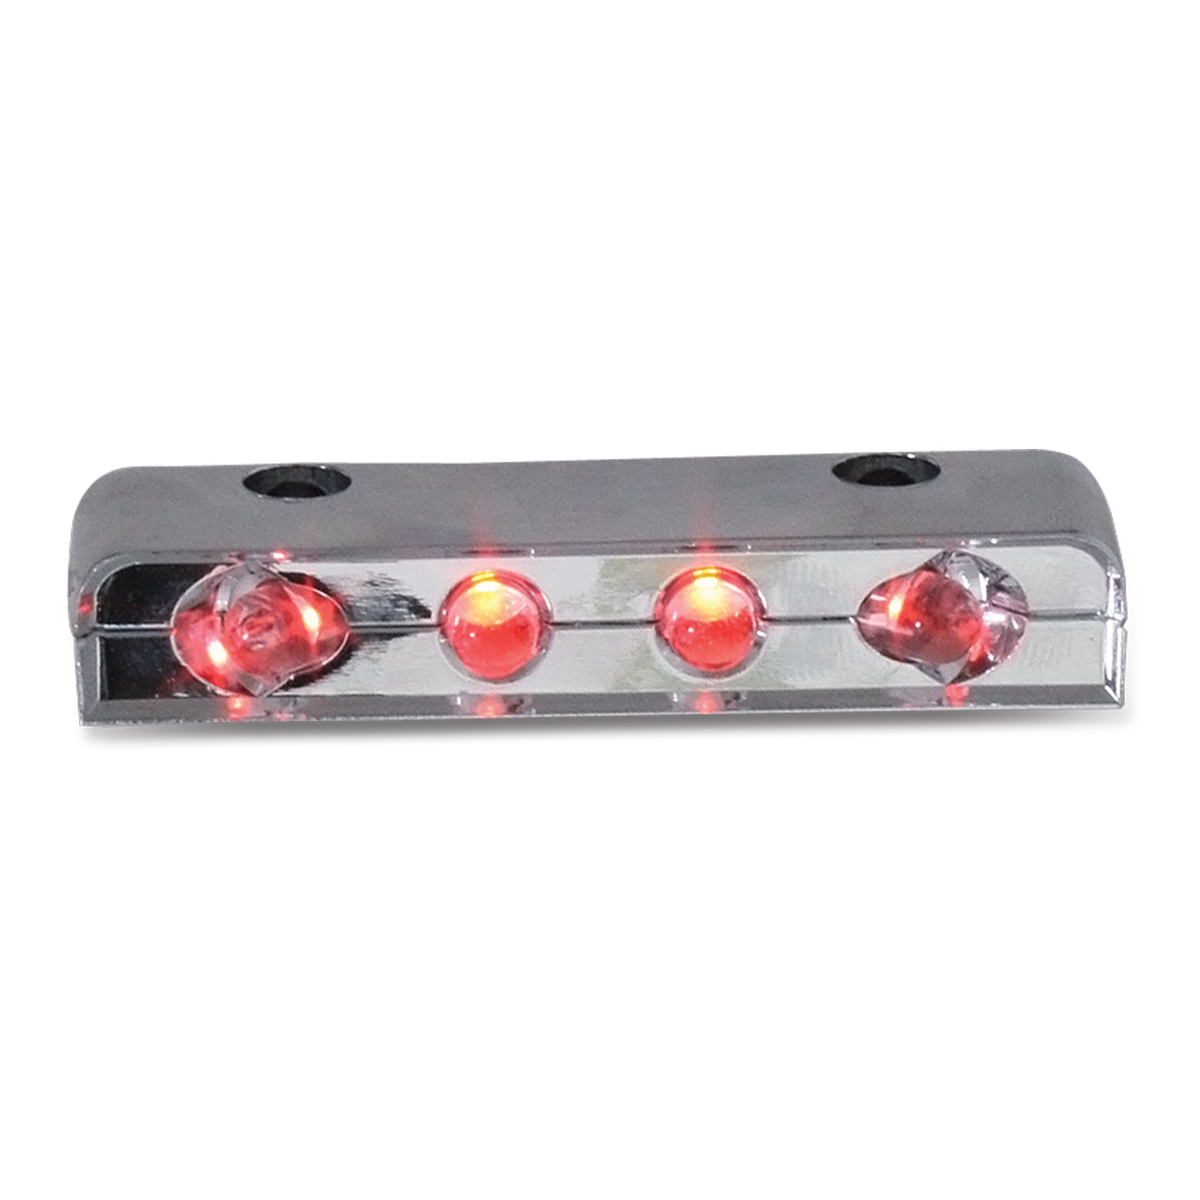 77104 Red 4 LED Step Light